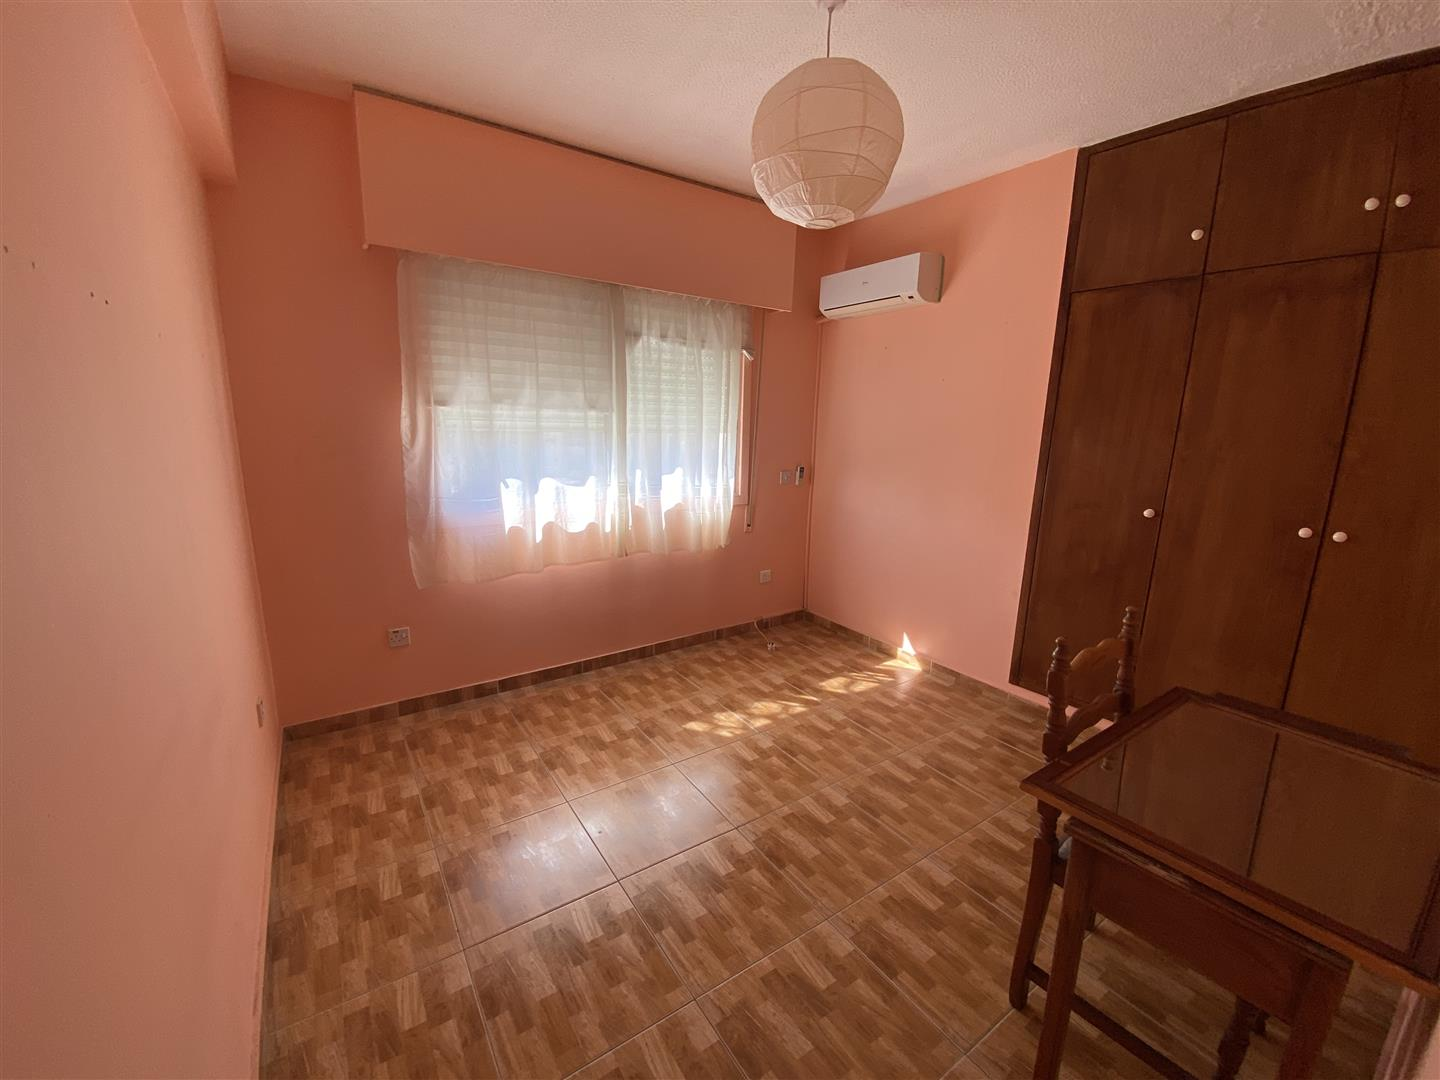 Picture of 3 Bed Apartment in Neapolis